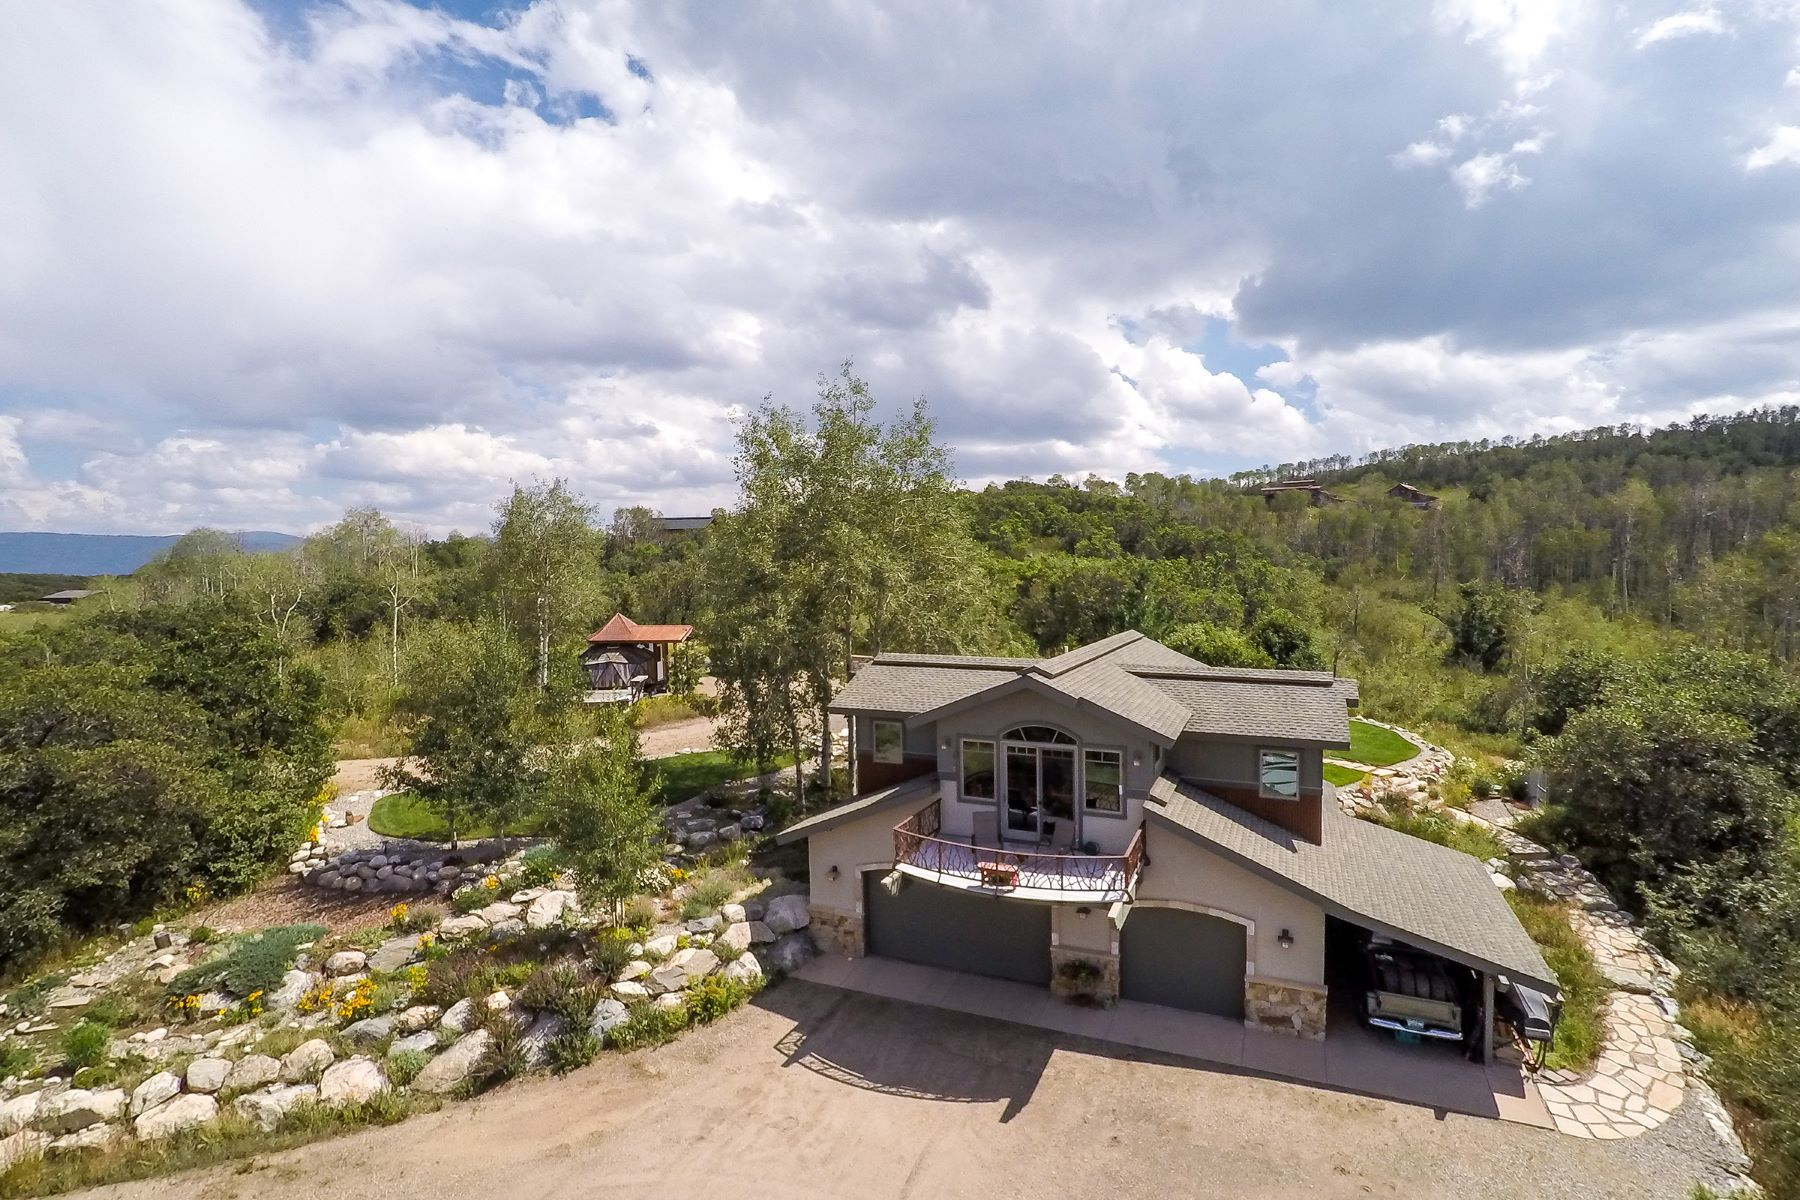 Single Family Home for Sale at Whitewood Home 22015 Whitewood Drive W Steamboat Springs, Colorado 80487 United States